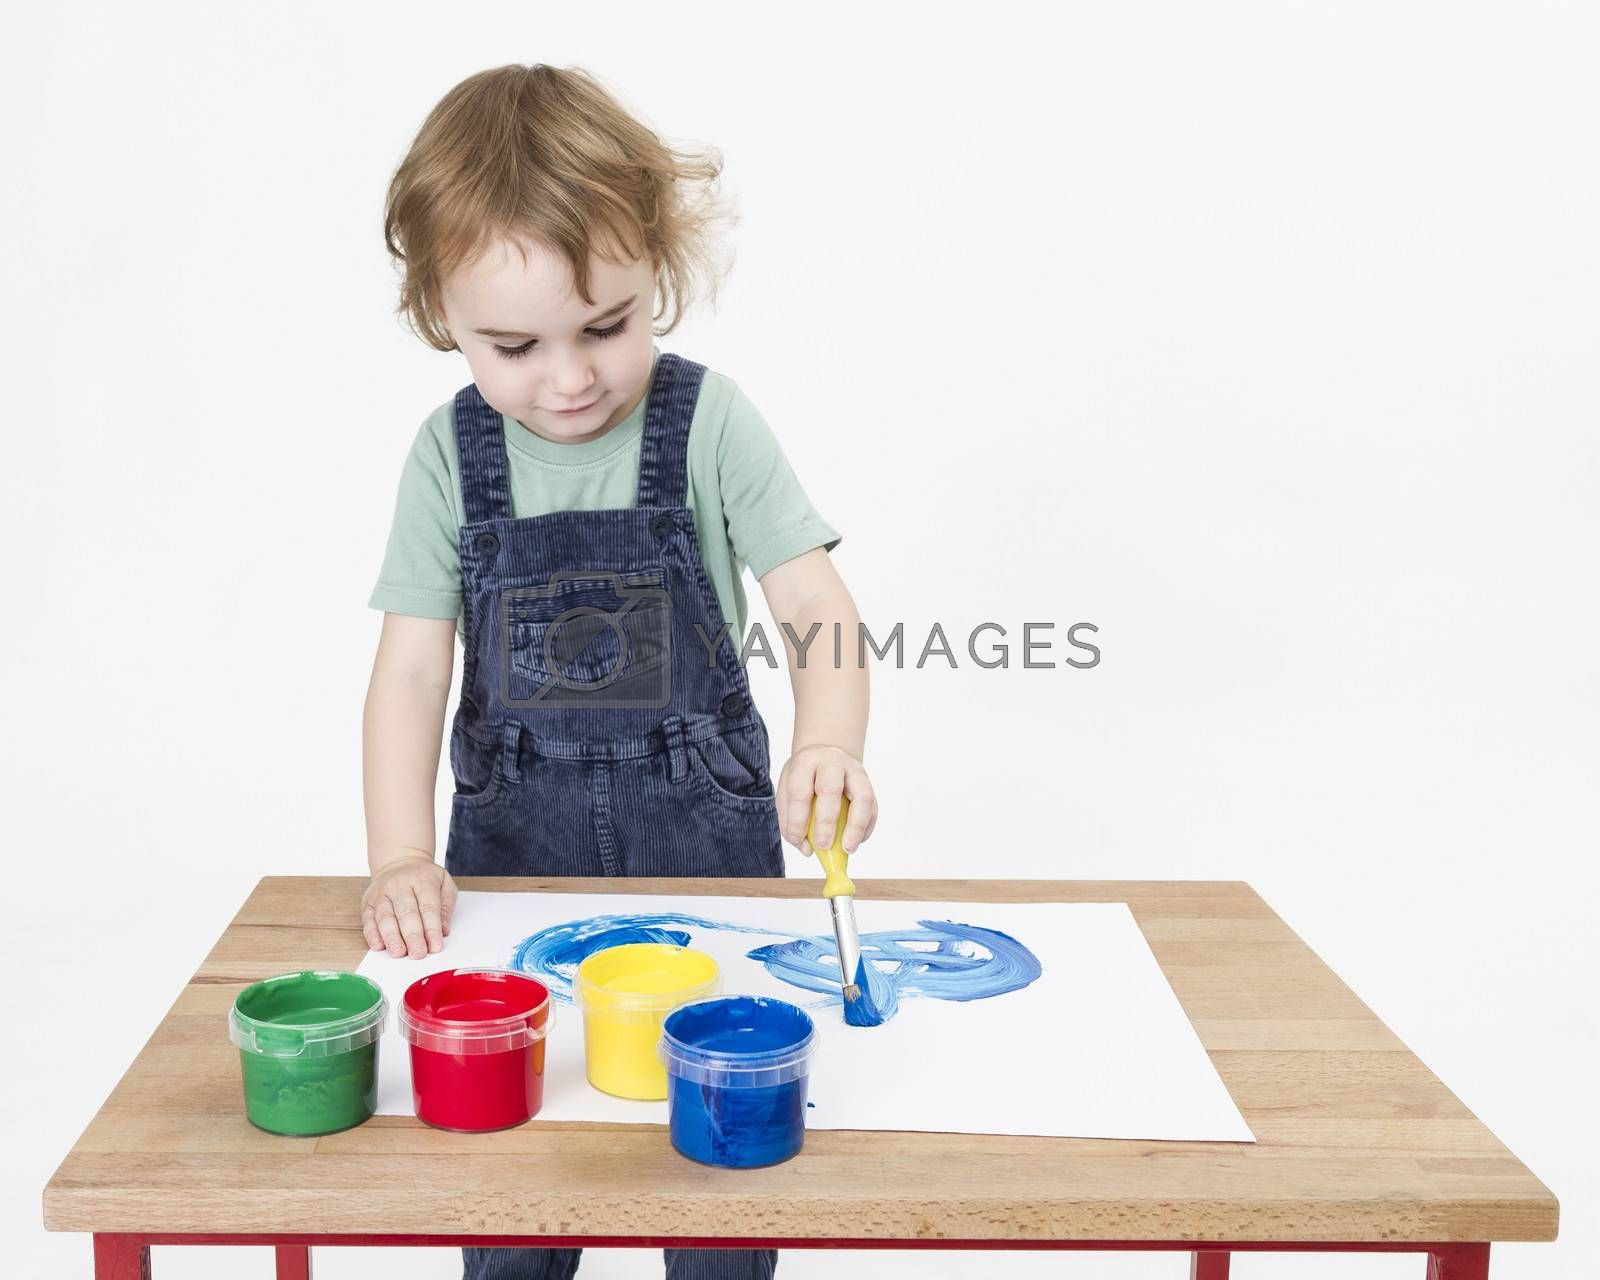 Royalty free image of cute girl painting on small desk by gewoldi